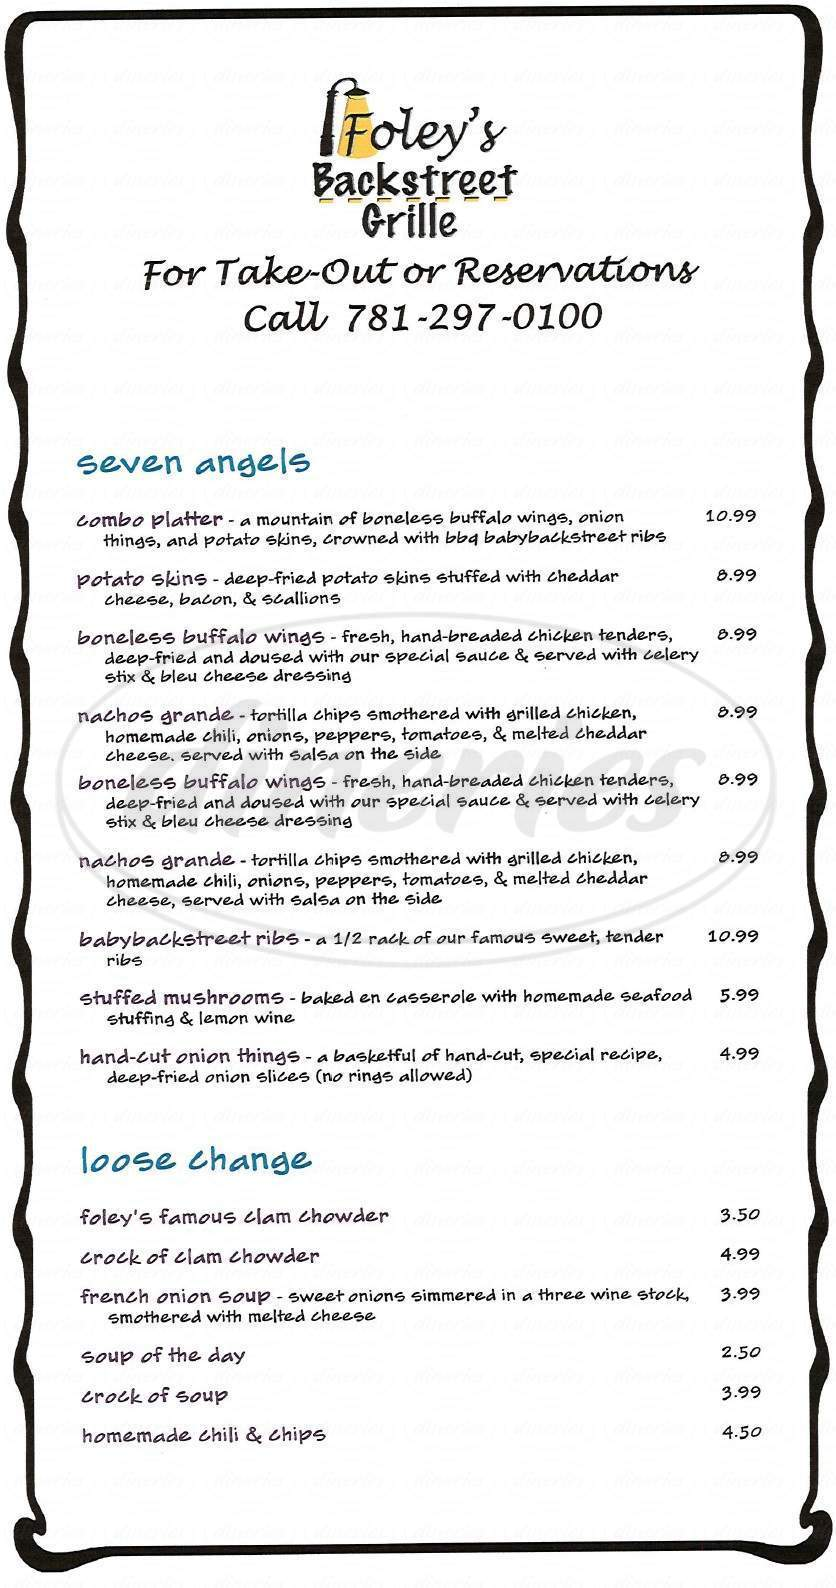 menu for Foleys Backstreet Grille